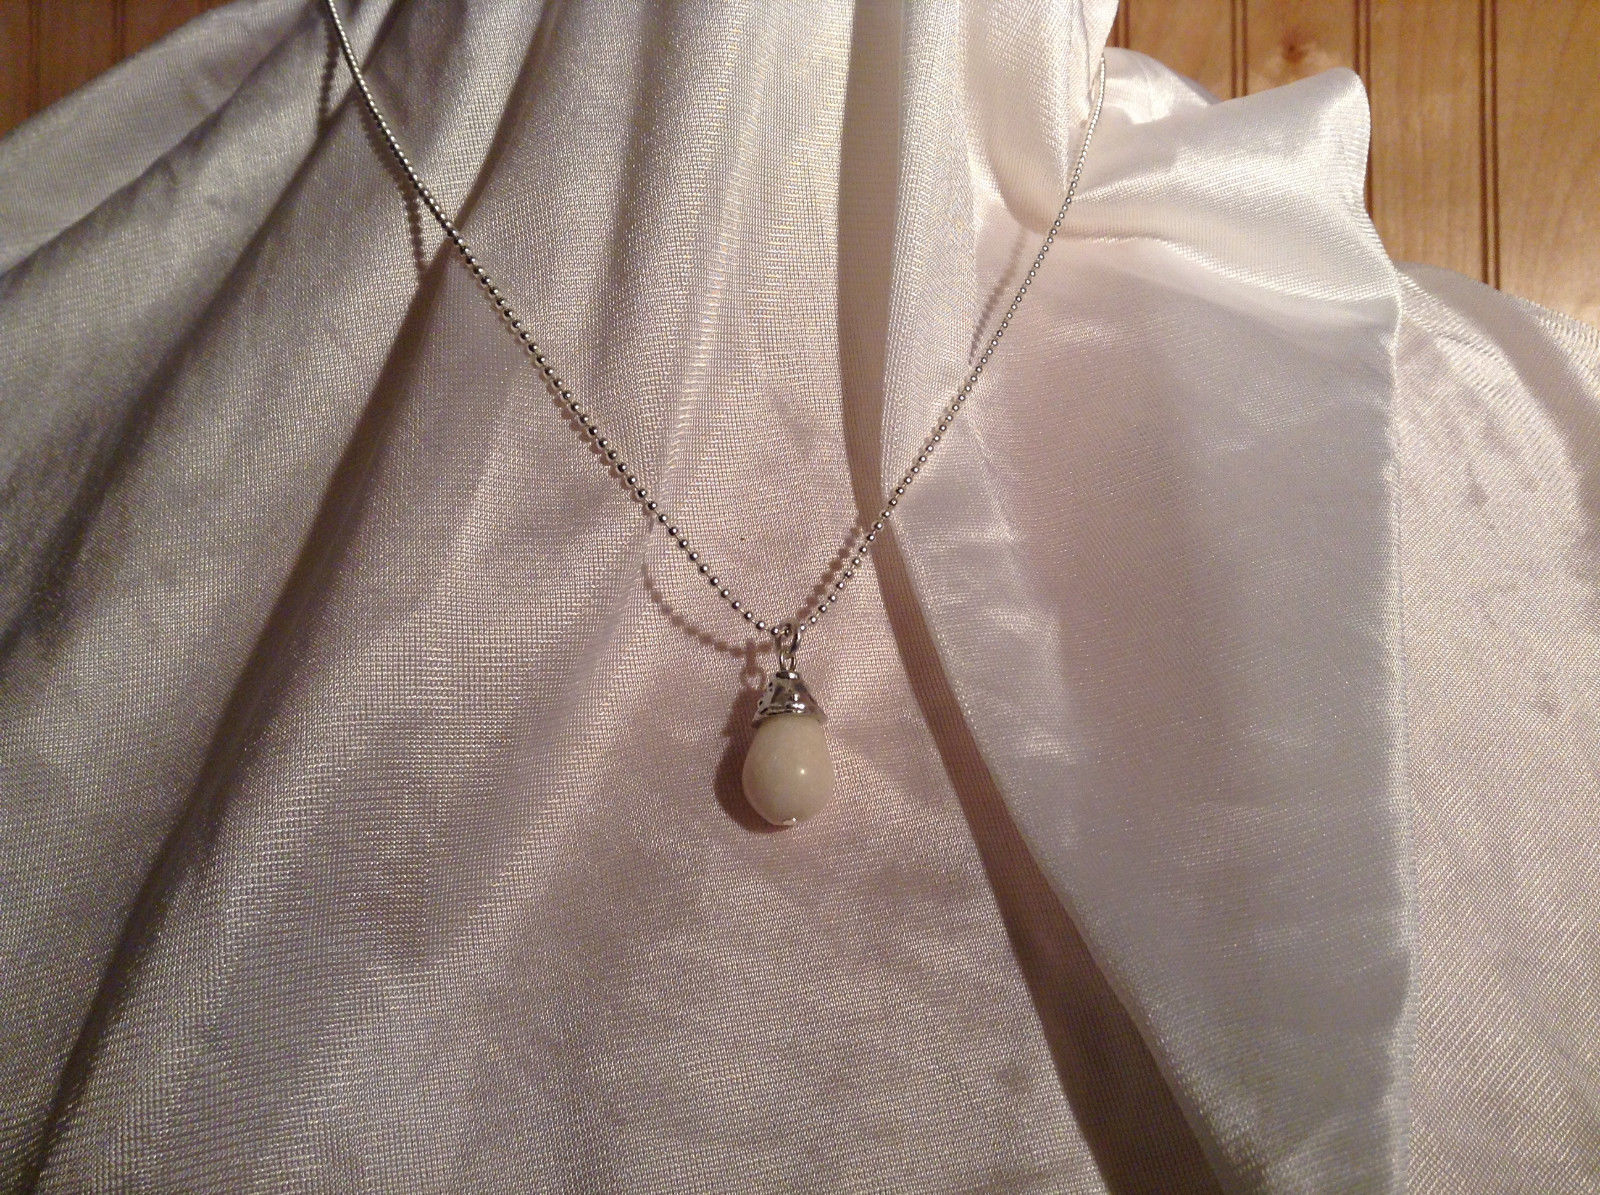 White Faux Pearl Teardrop BirthStone Ball Chain Pendant Necklace by Bella Ryann